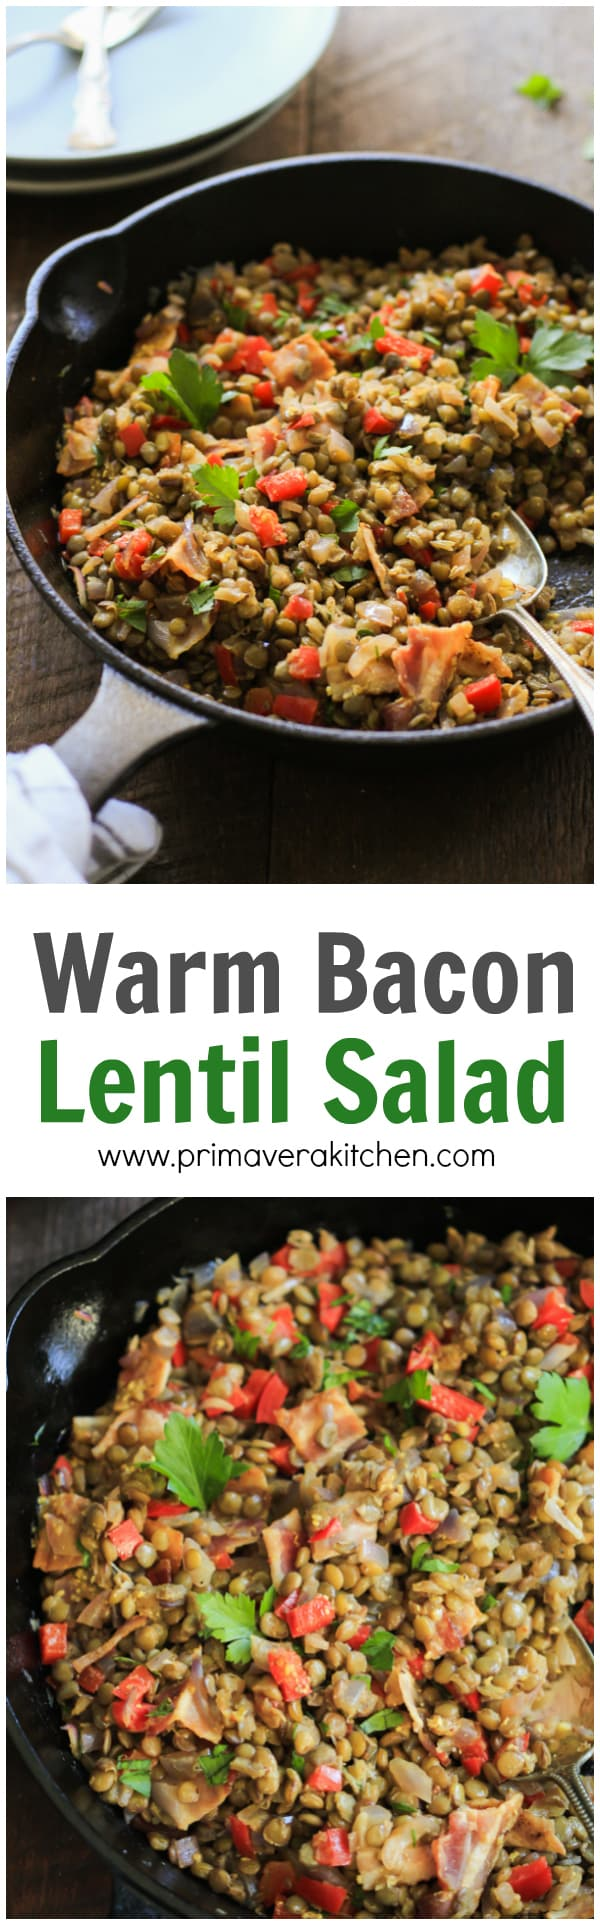 This Warm Bacon Lentil Salad is very easy and quick to make and it is tossed with a delicious Dijon dressing! www.primaverakitchen.com